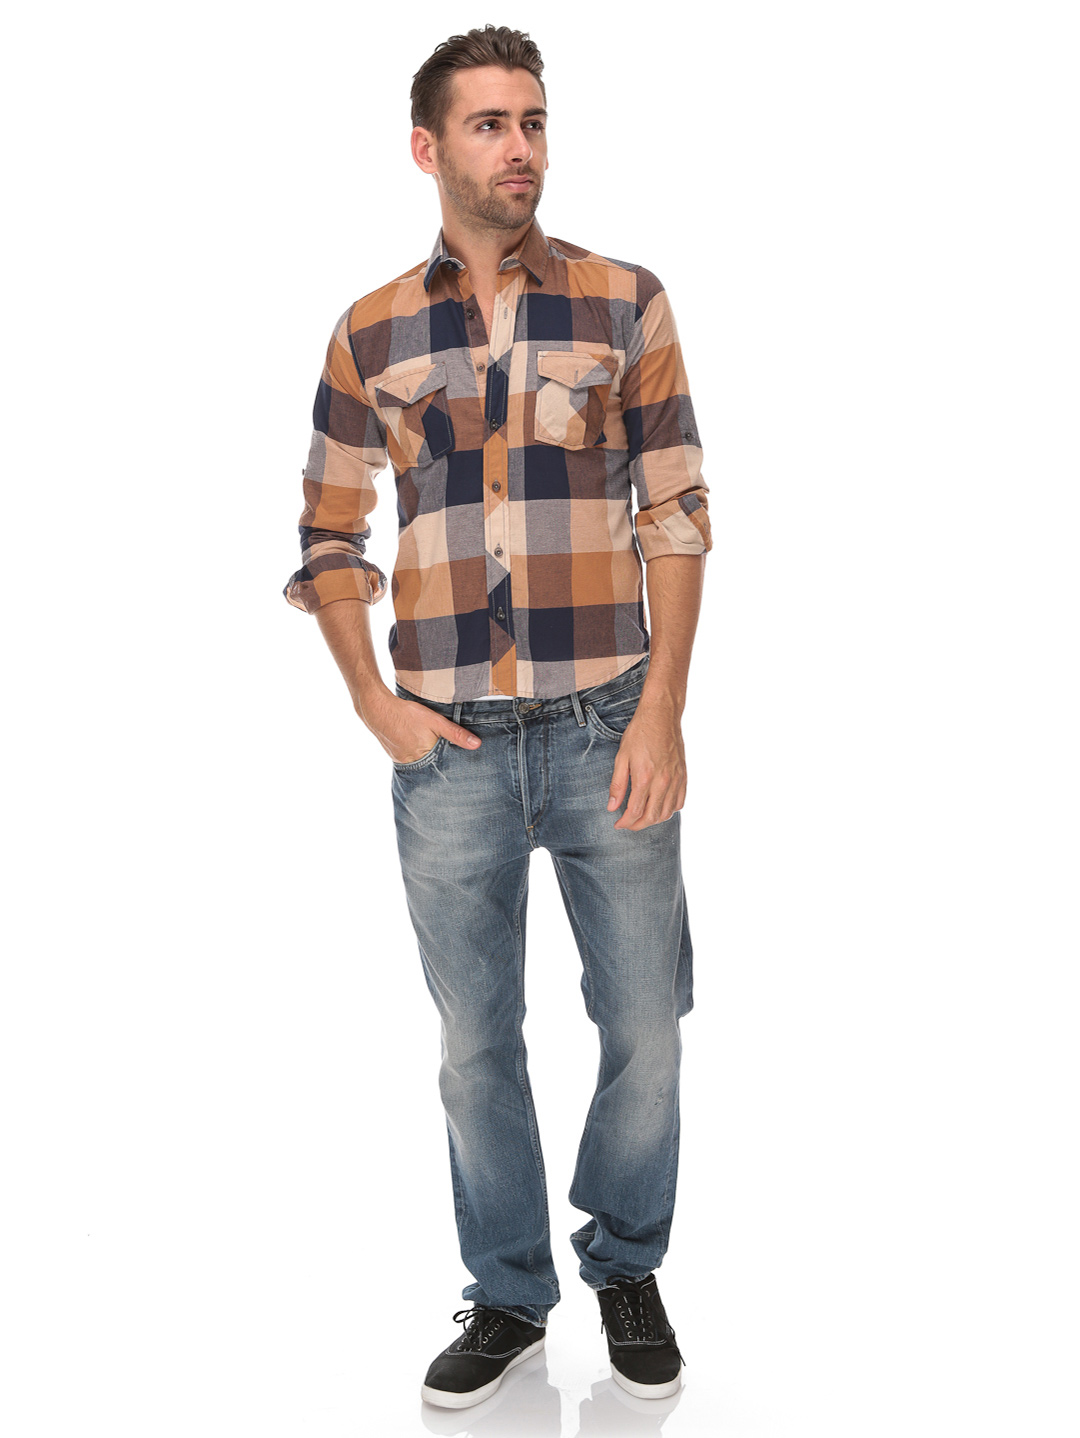 New Jeans Styles For Men 2013 BlogofTheWorld